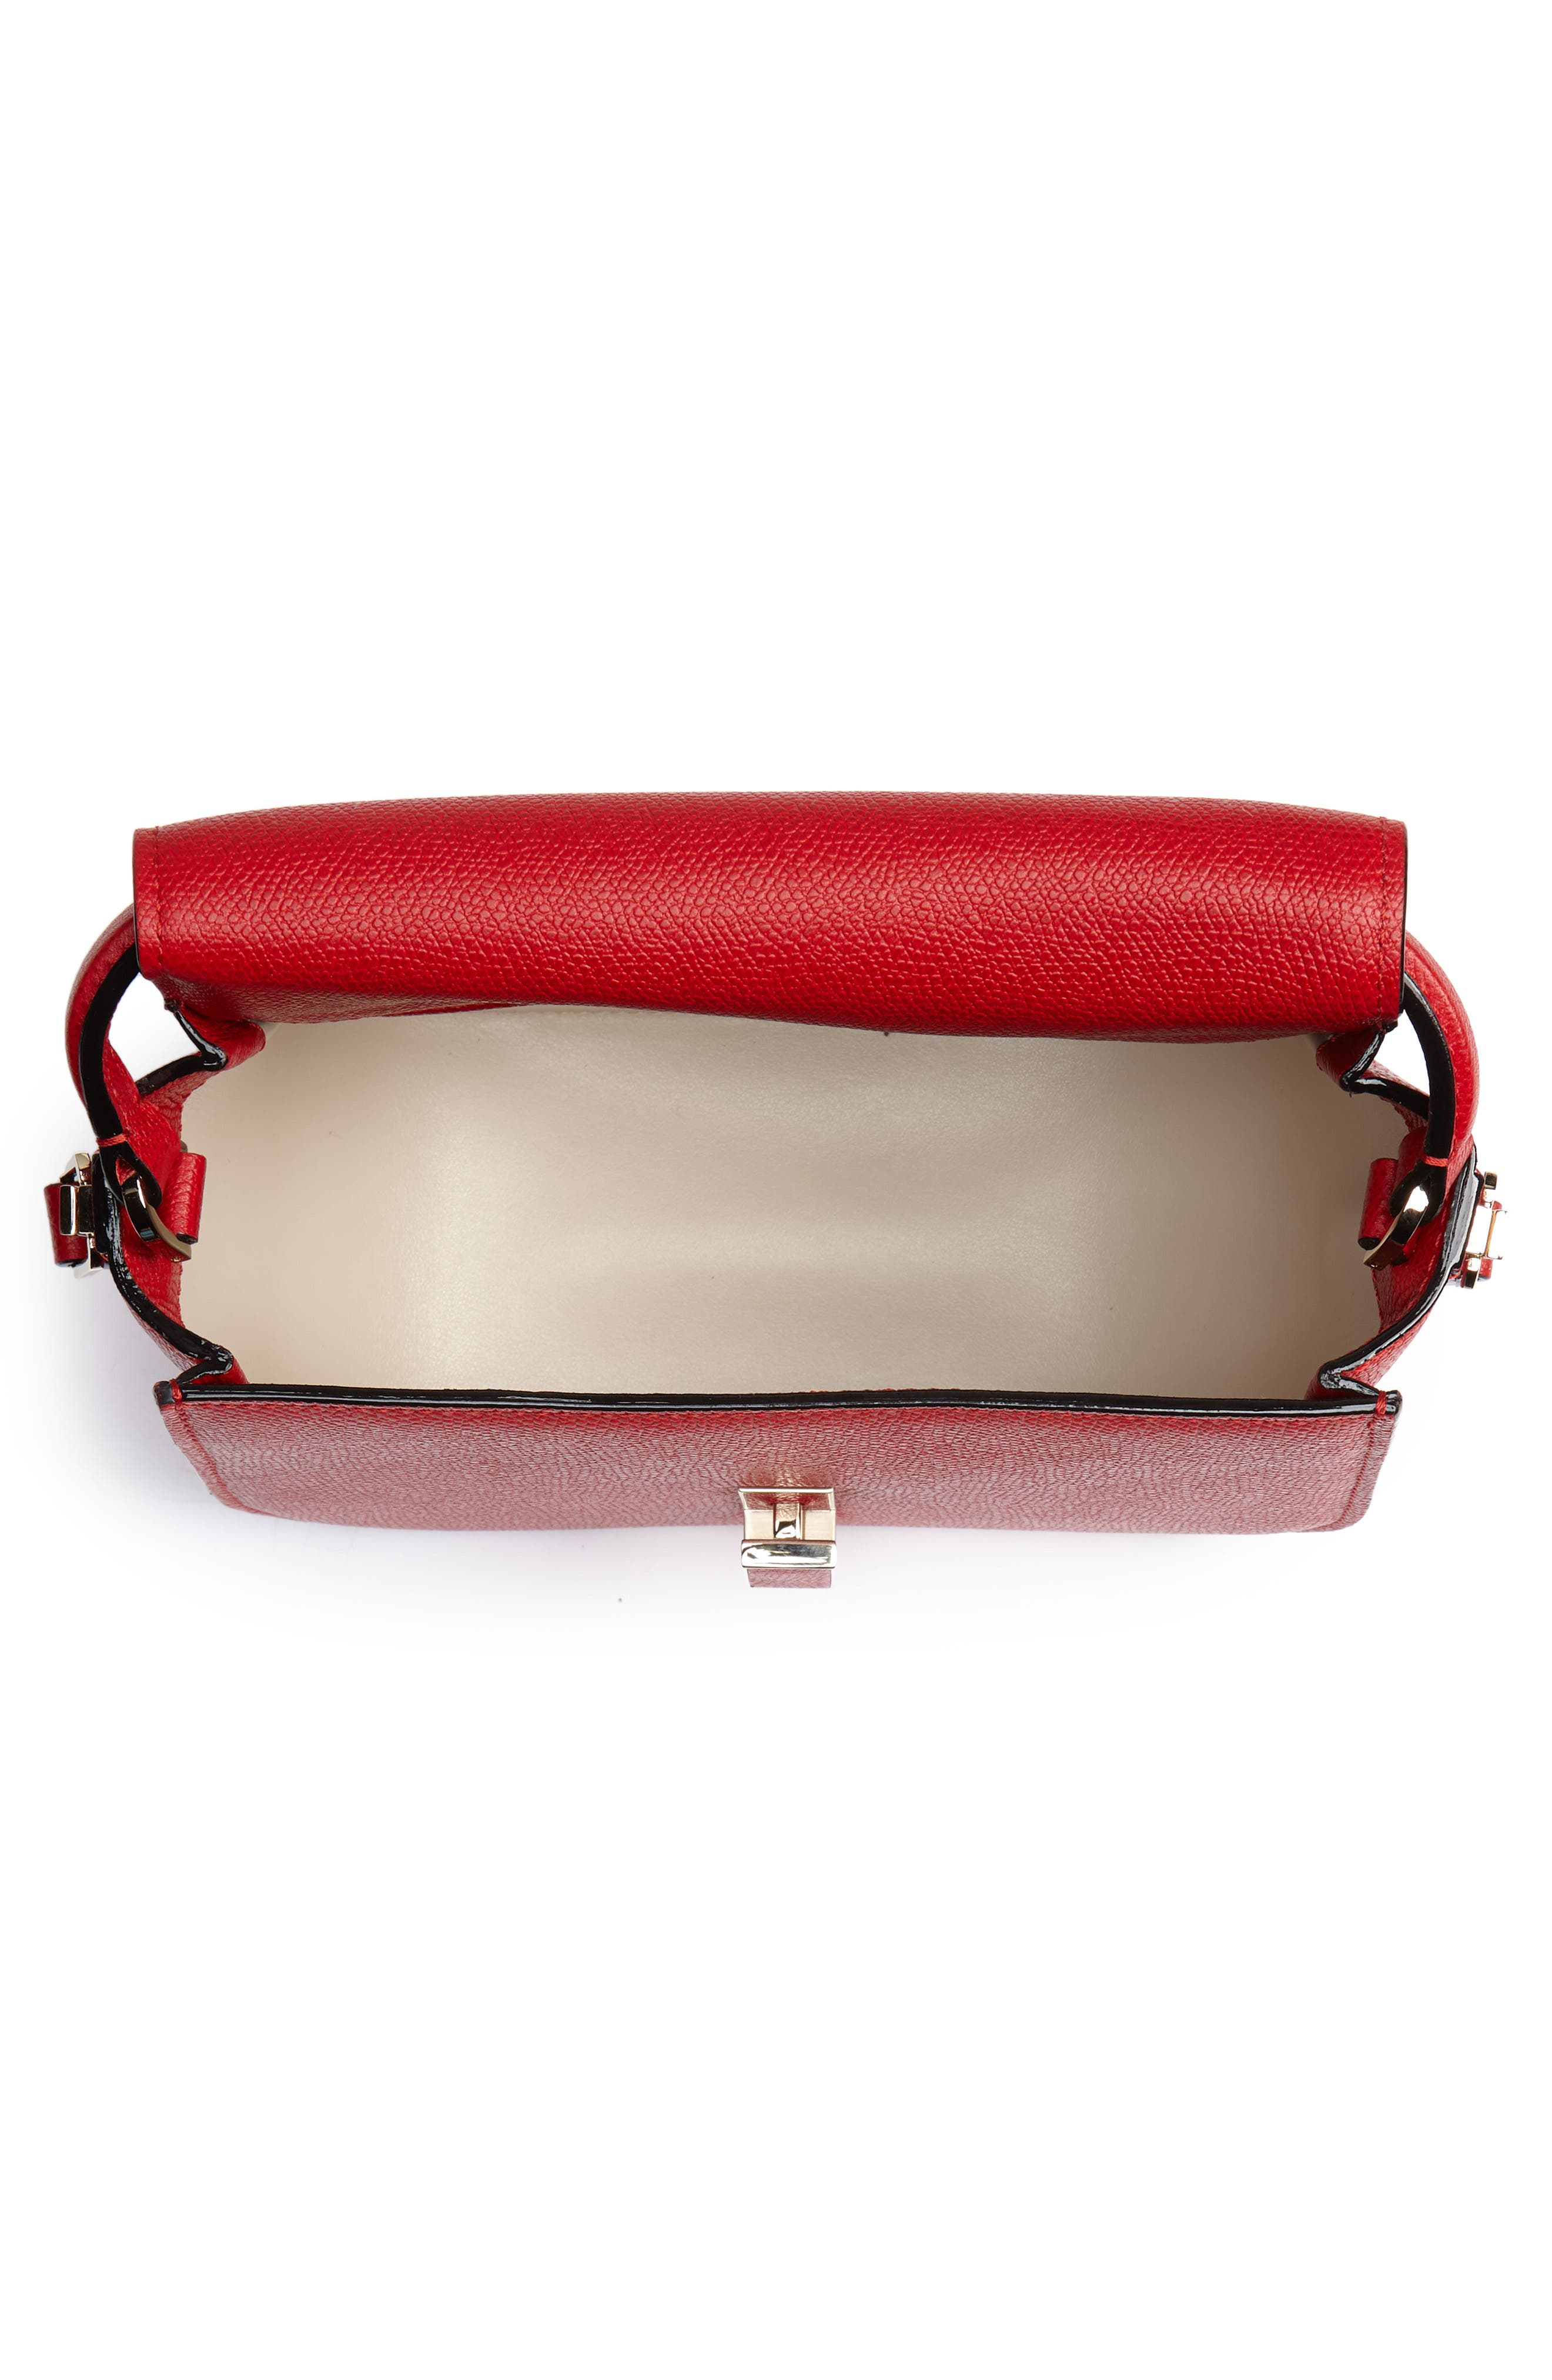 Iside Leather Top Handle Bag,                             Alternate thumbnail 4, color,                             RED